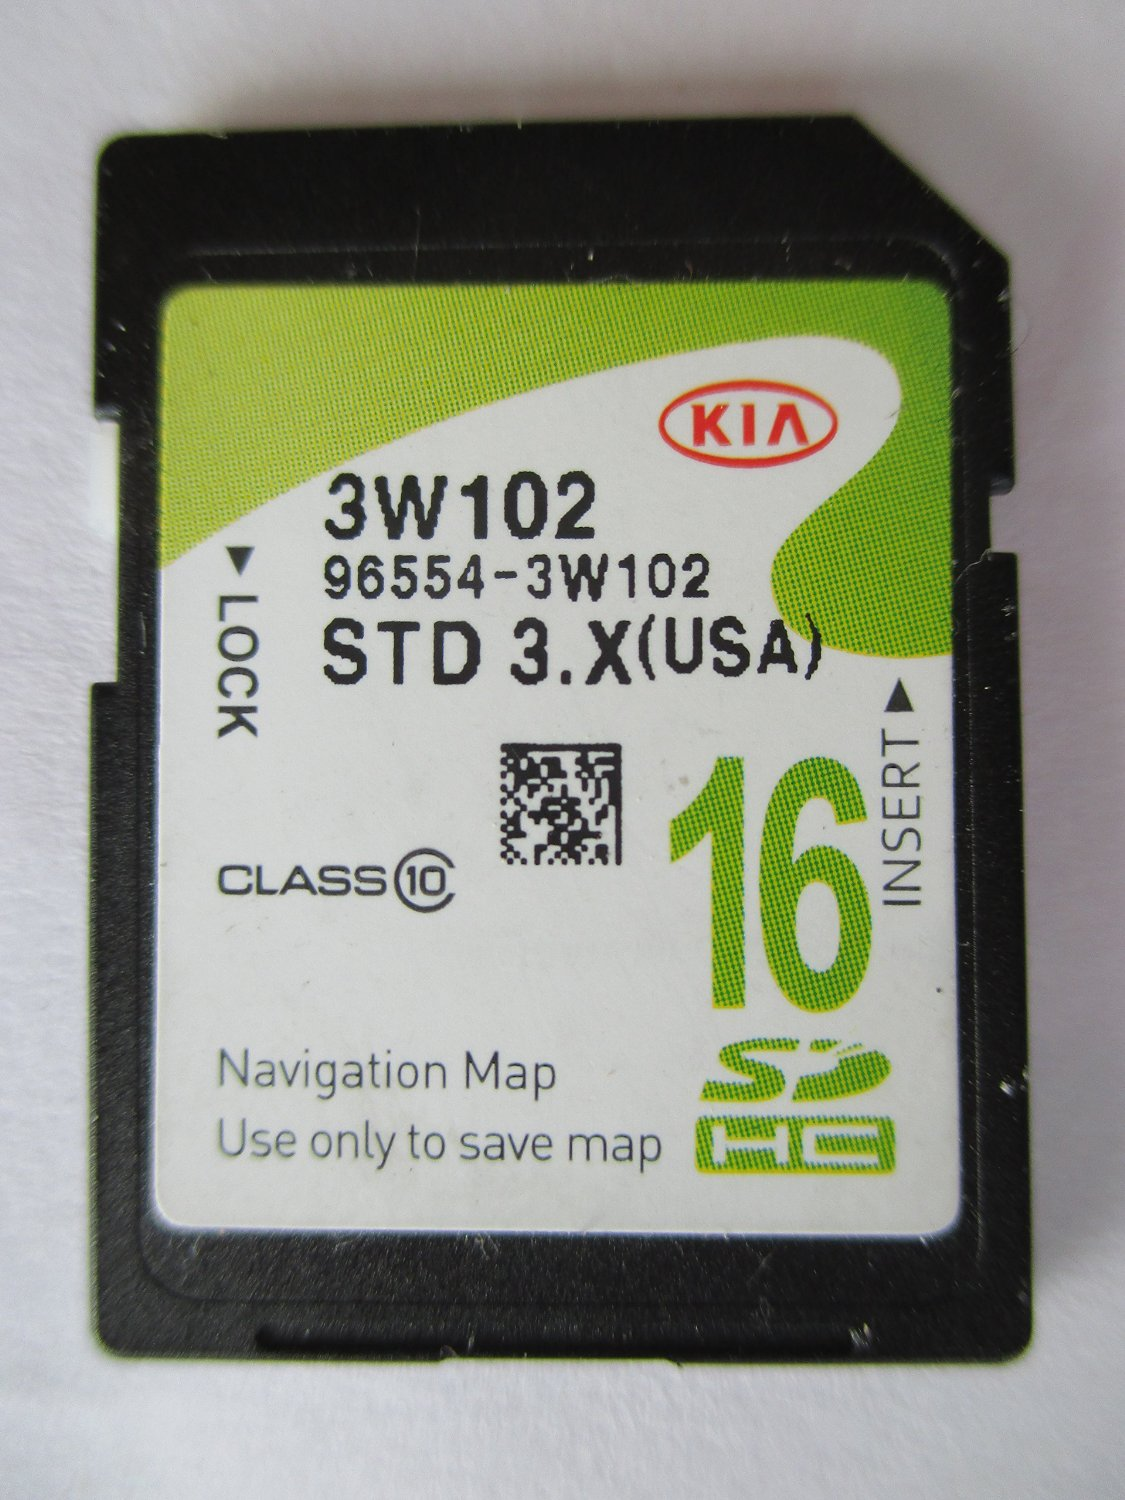 3W102 2014 2015 2016 KIA SPORTAGE Navigation MAP Sd Card ,GPS UPDATE , U.S.A OEM PART # 96554-3W102 3.X 16GB